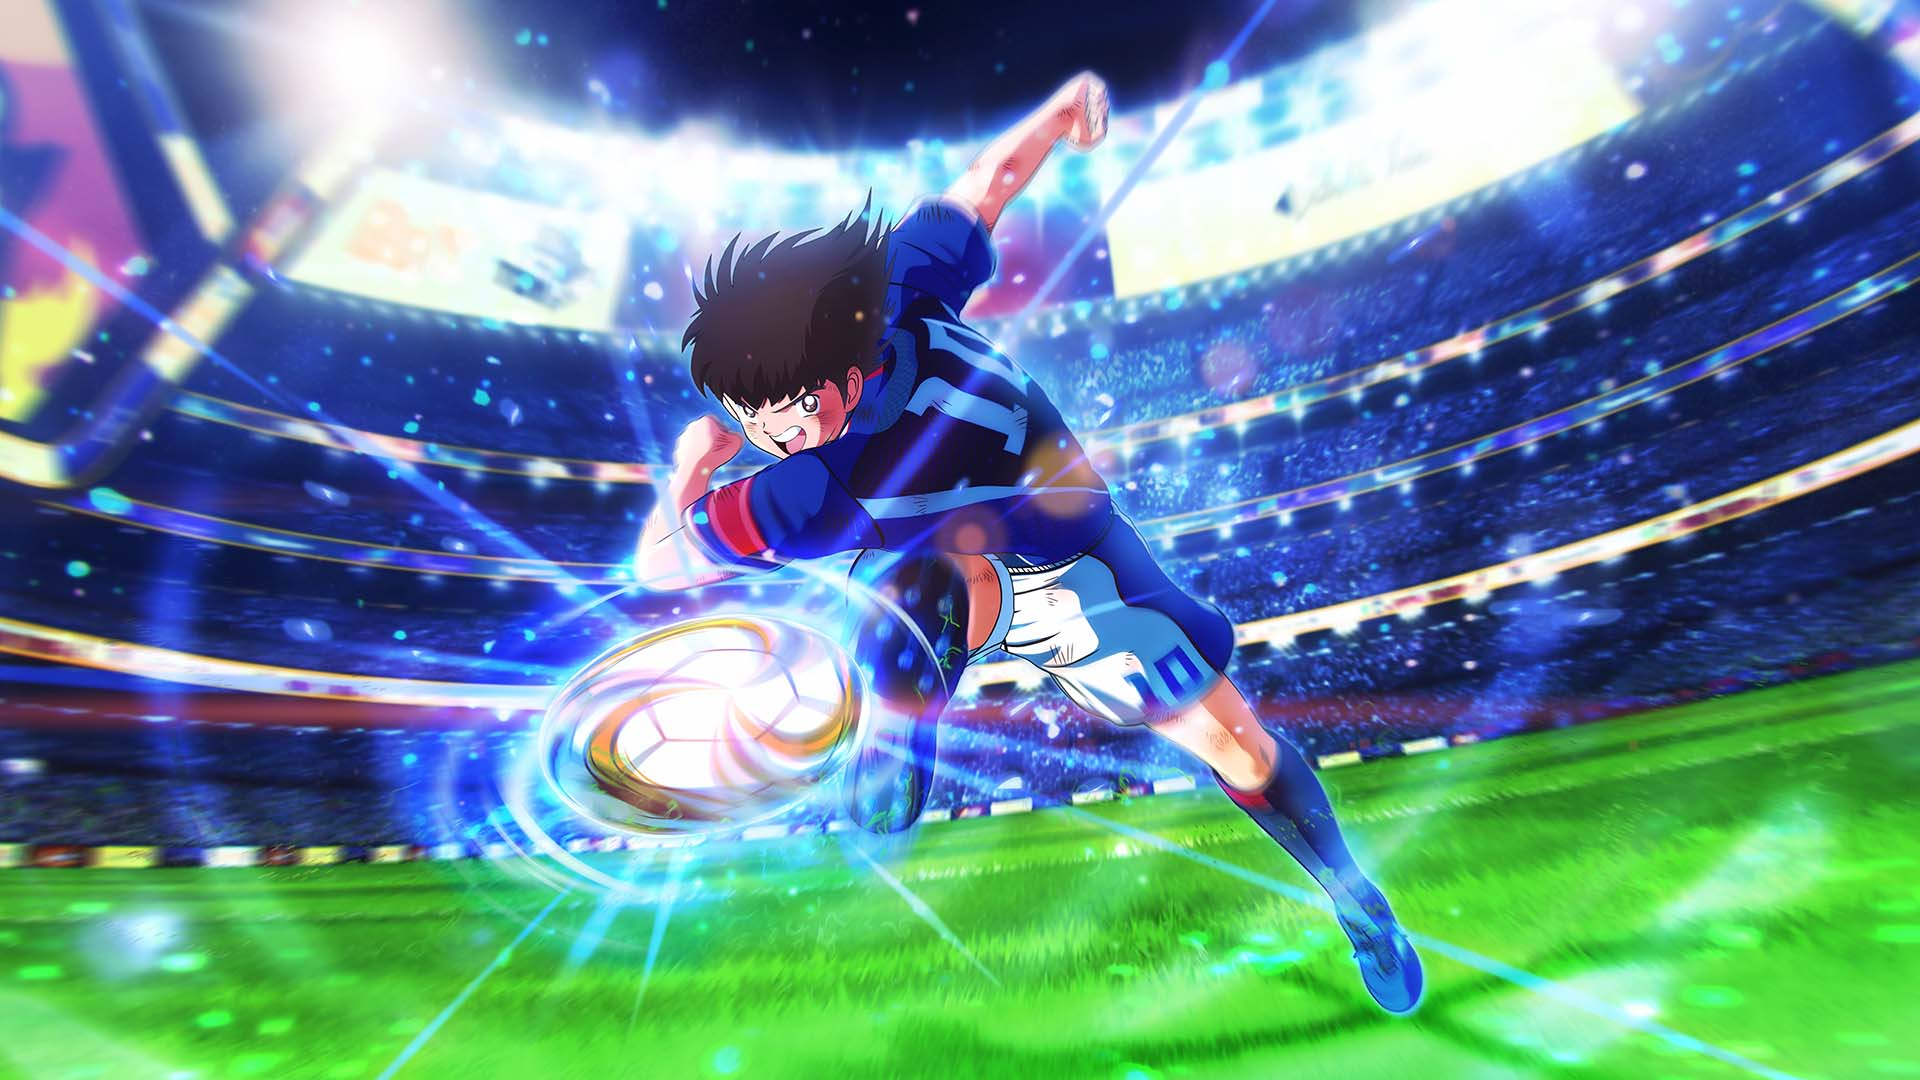 Captain Tsubasa Back 2 The Past